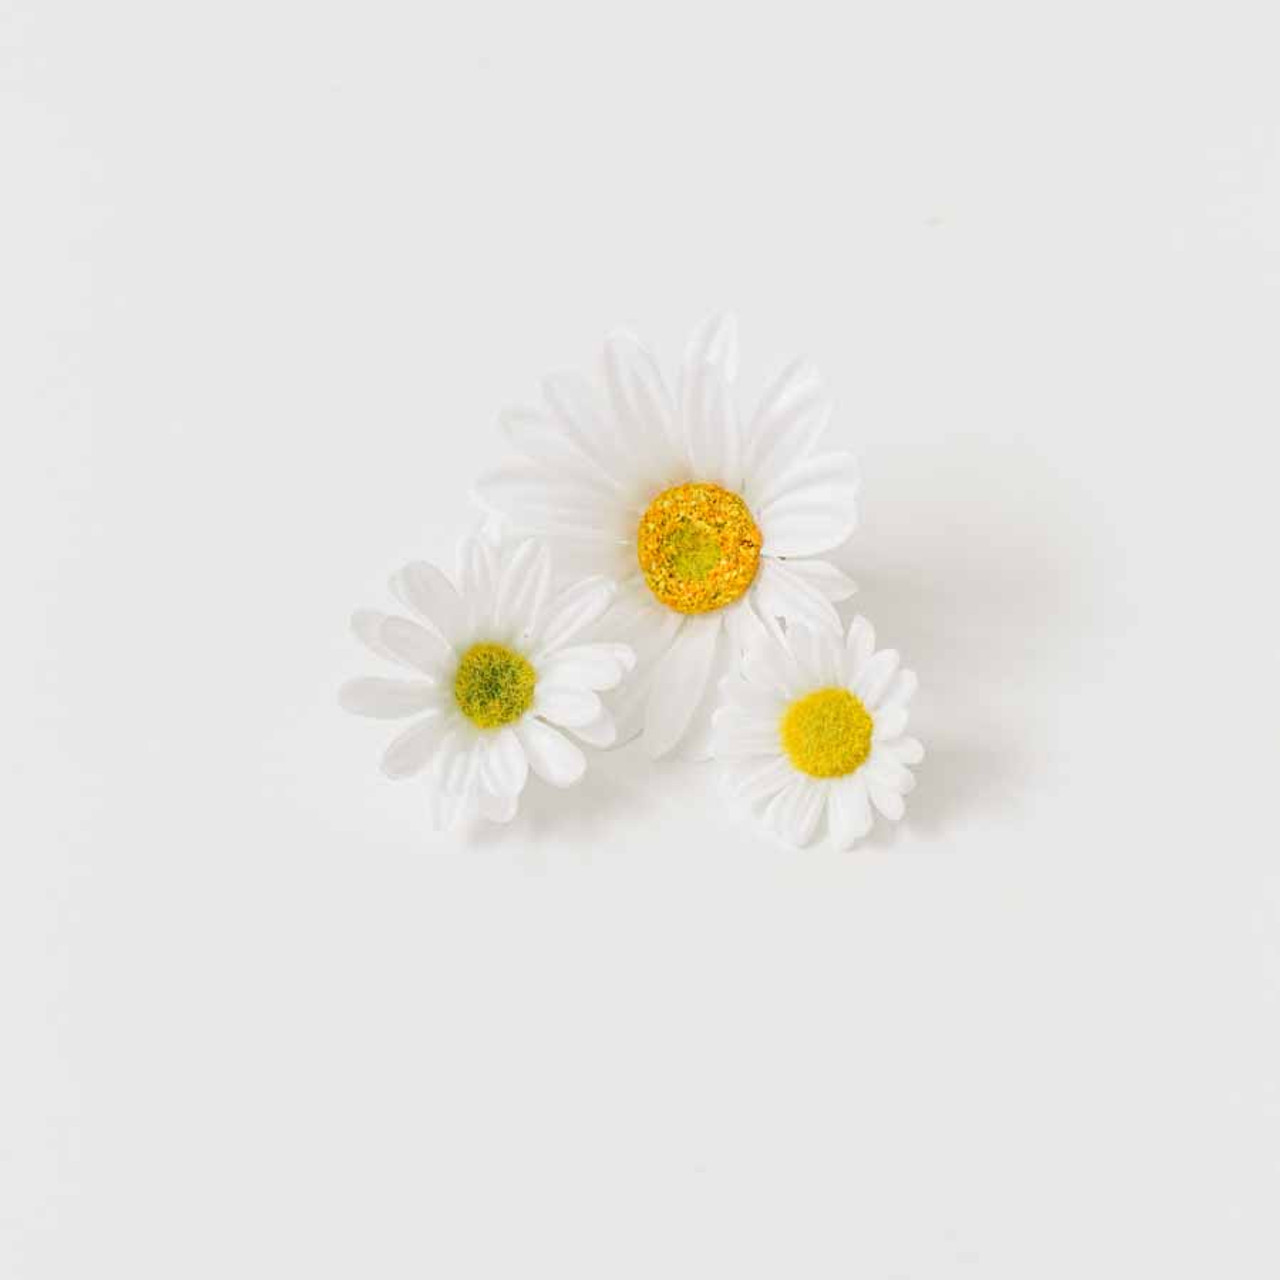 Daisy flower heads great for embellishing any craft project bd sku flower daisy white izmirmasajfo